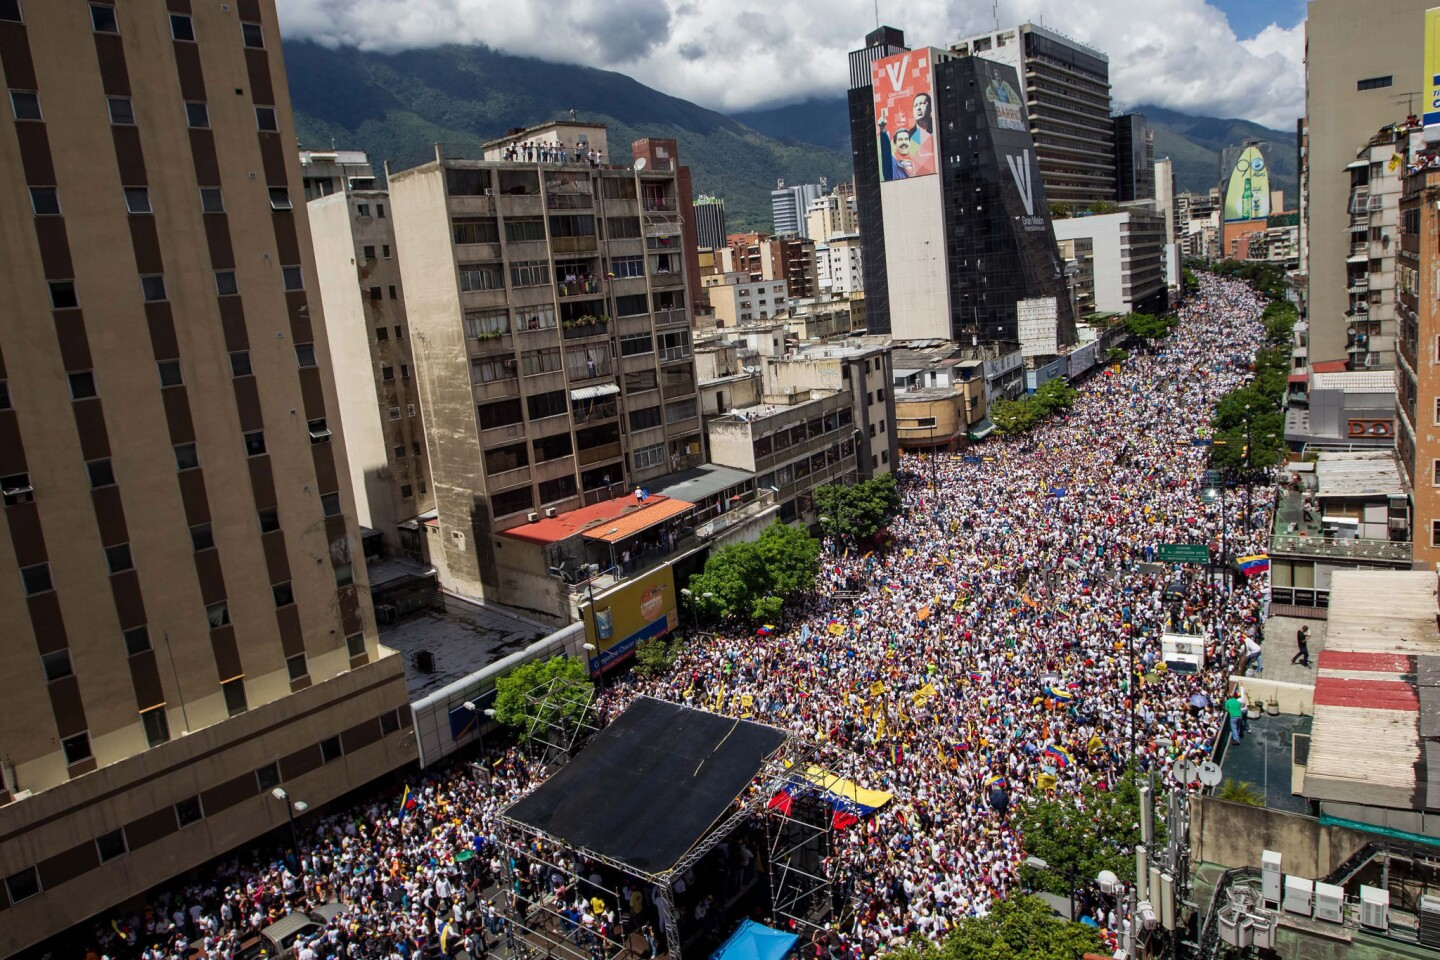 Demonstrations in Venezuela